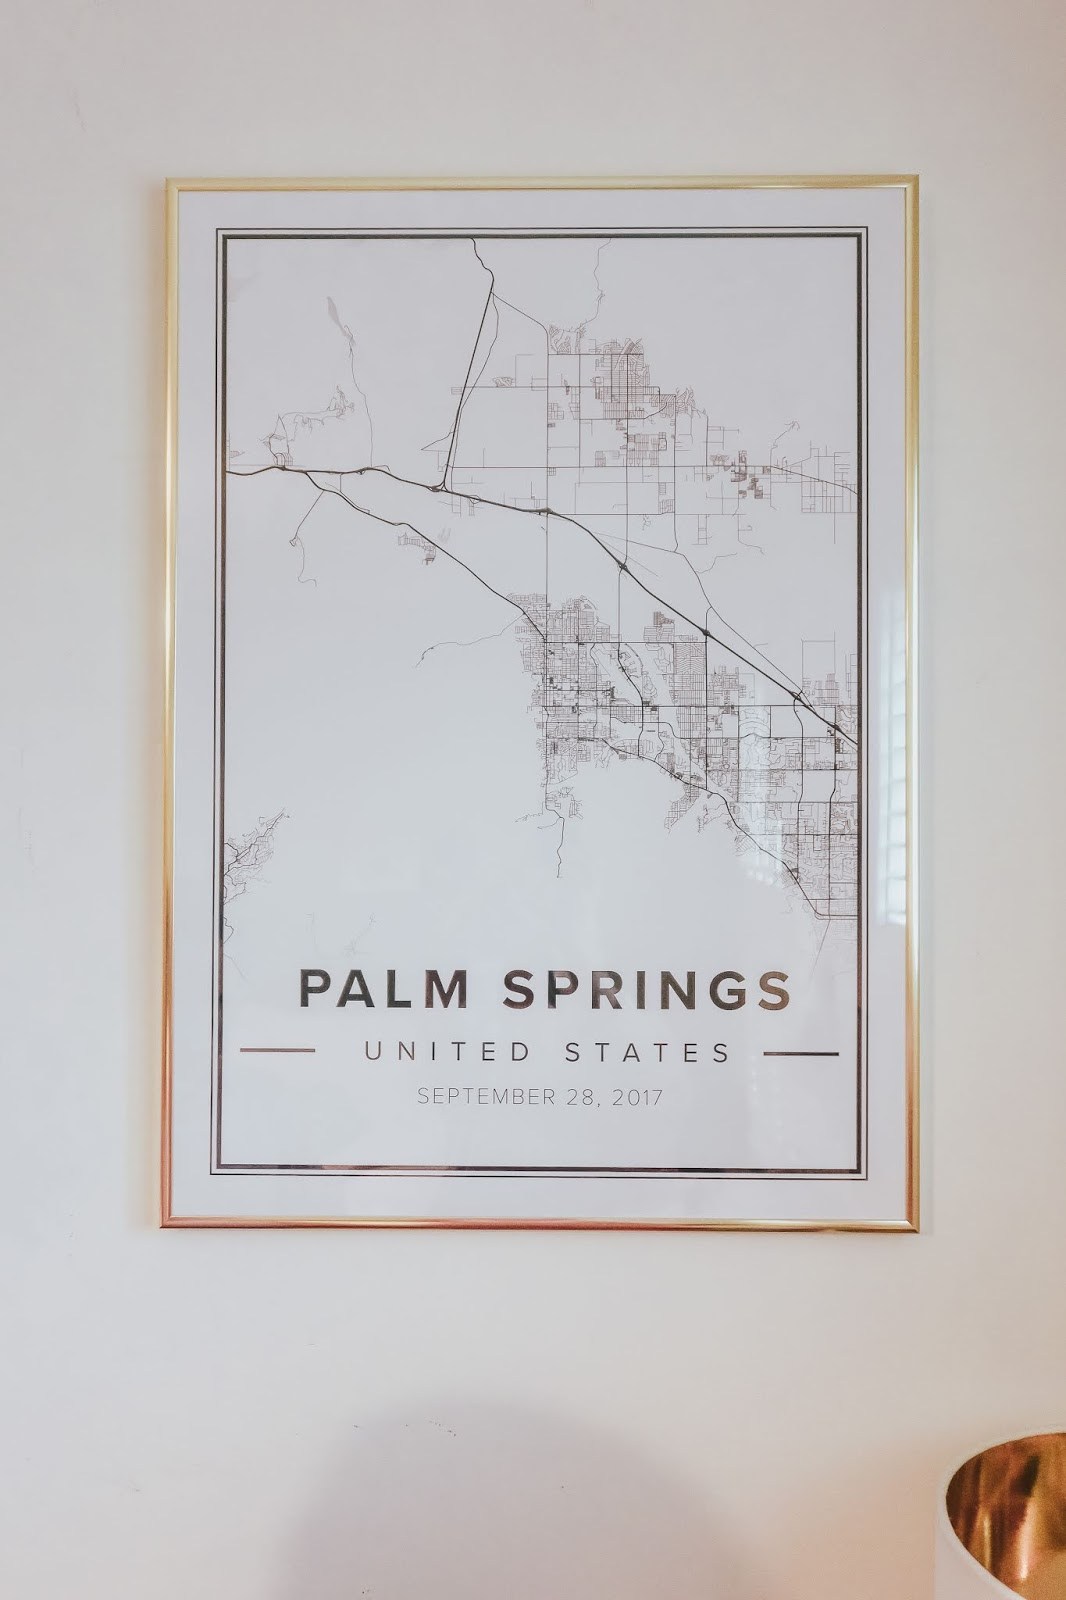 Palm springs map frame with gold desenio frame